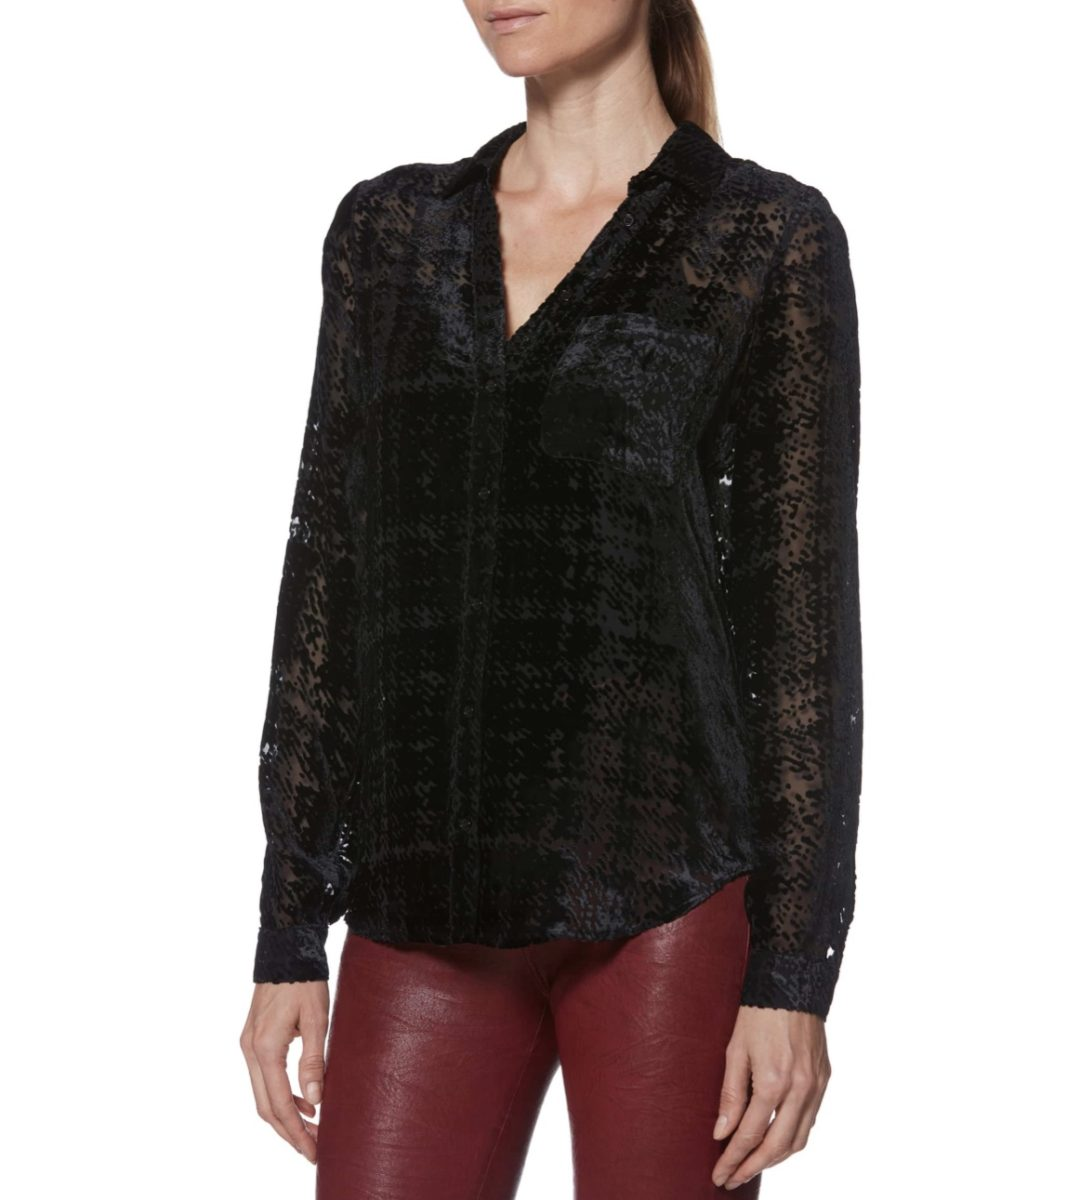 Luxurious Velvet Tops For Over 50 Fashionistas